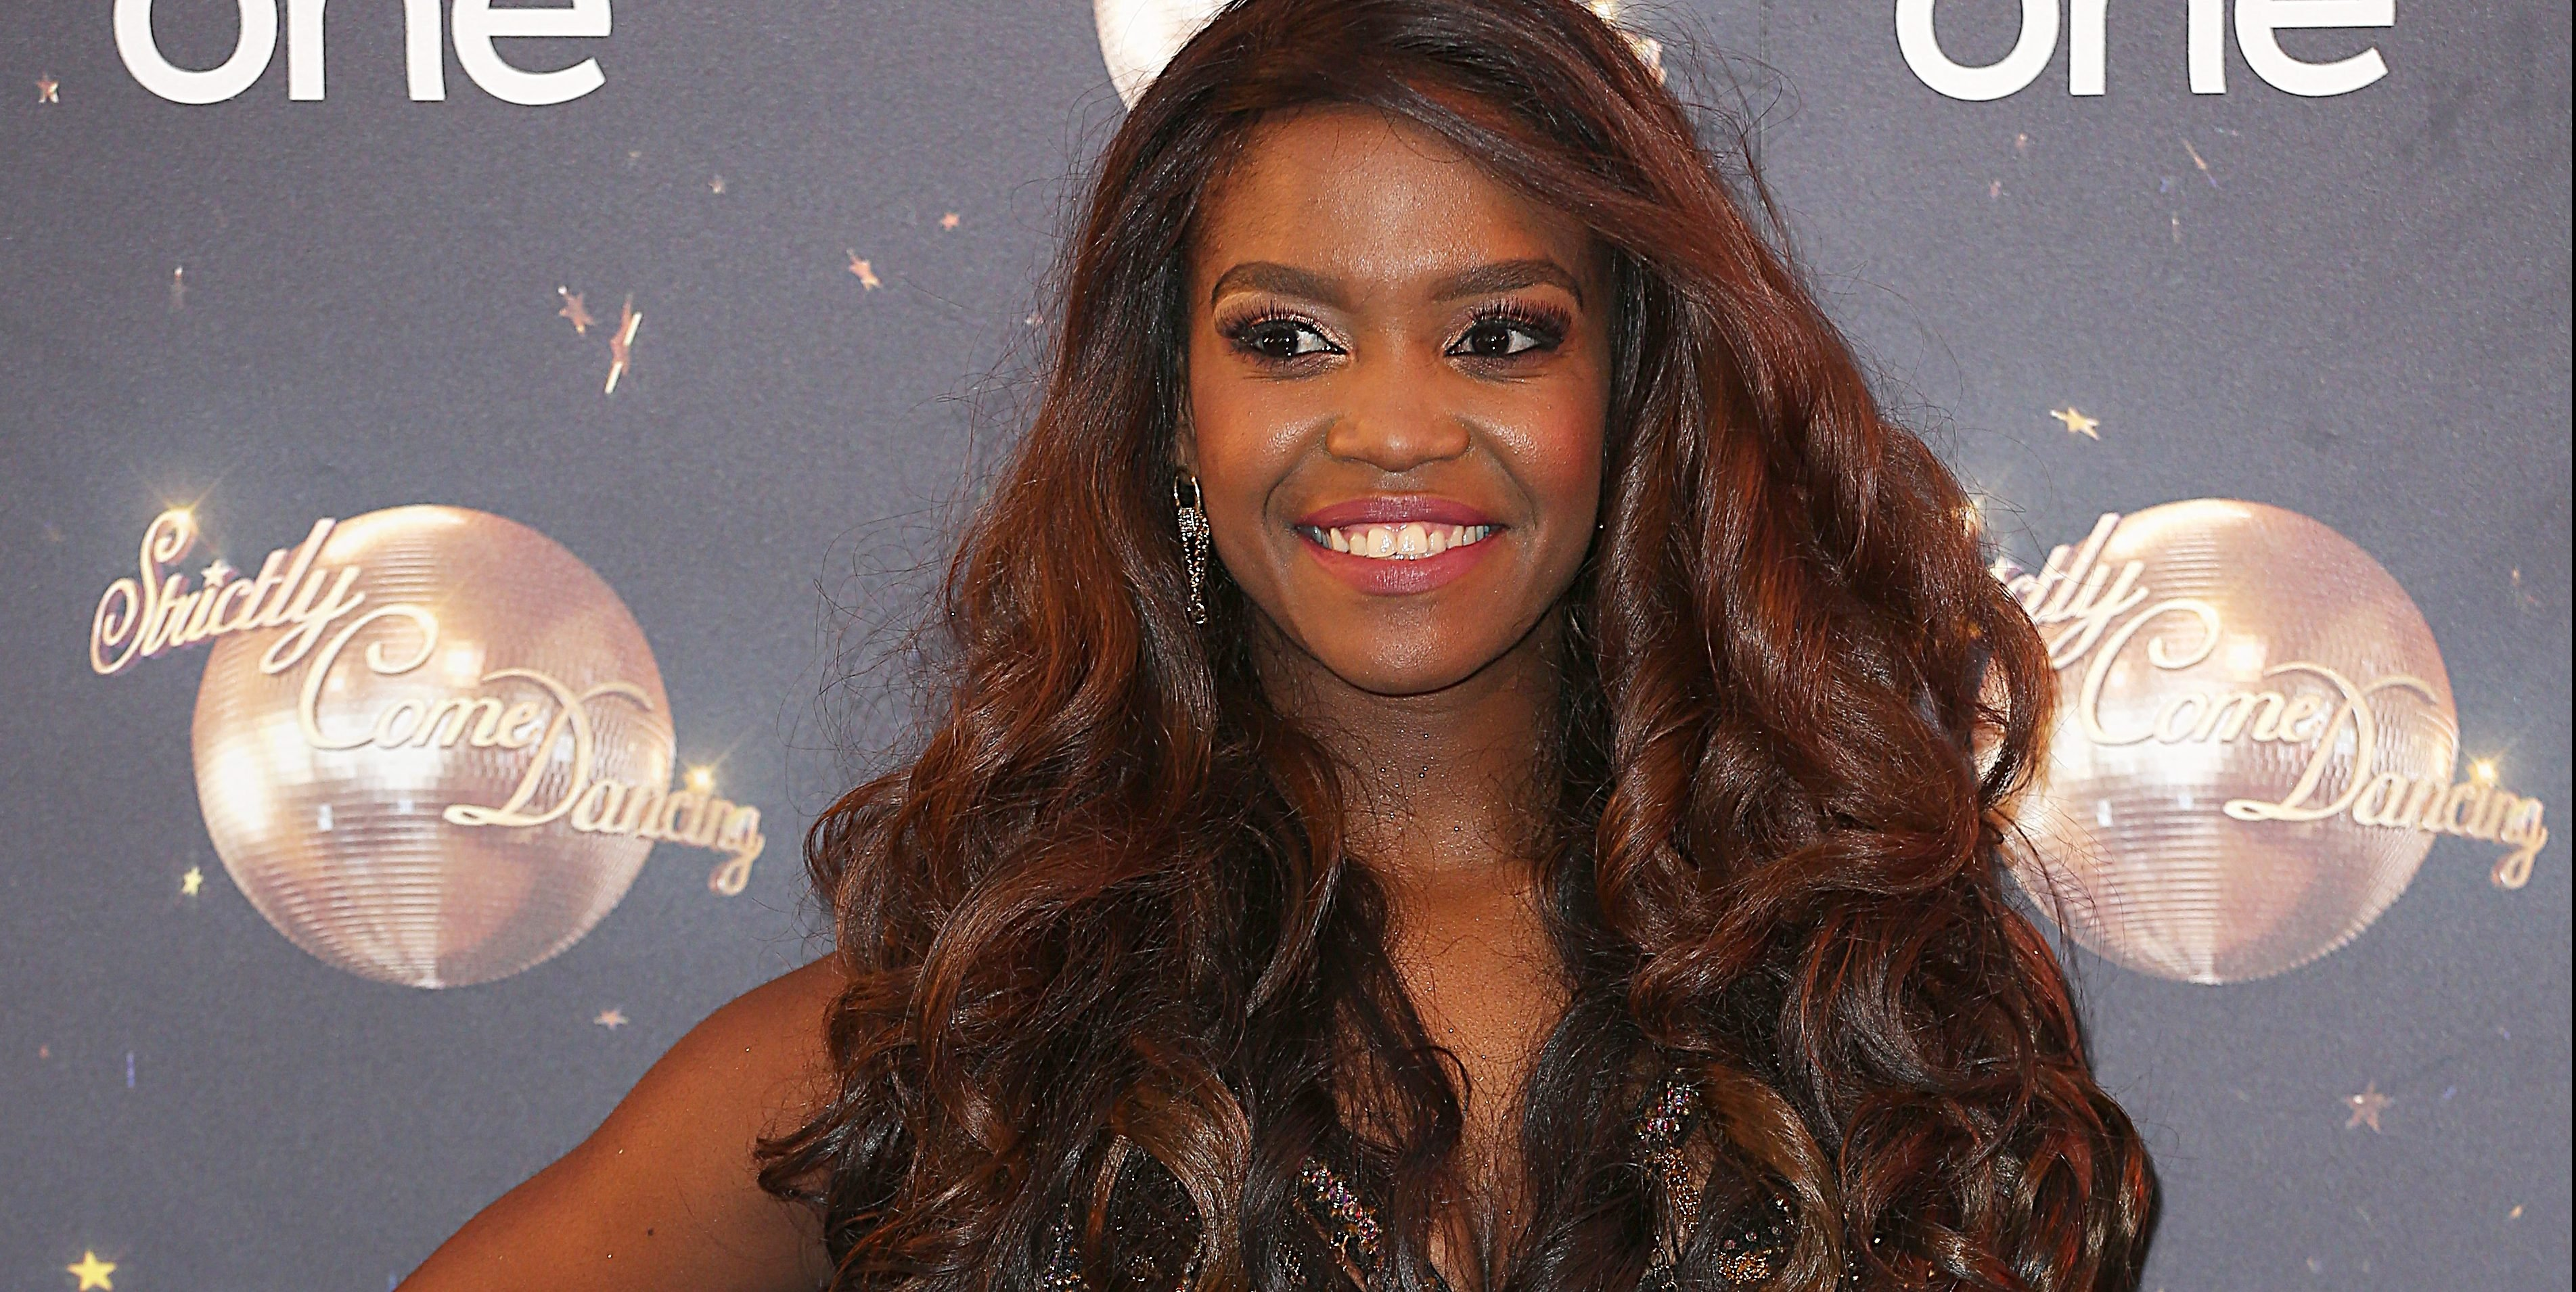 Strictly Come Dancing's Oti Mabuse reveals her GG breasts left her insecure and tearful